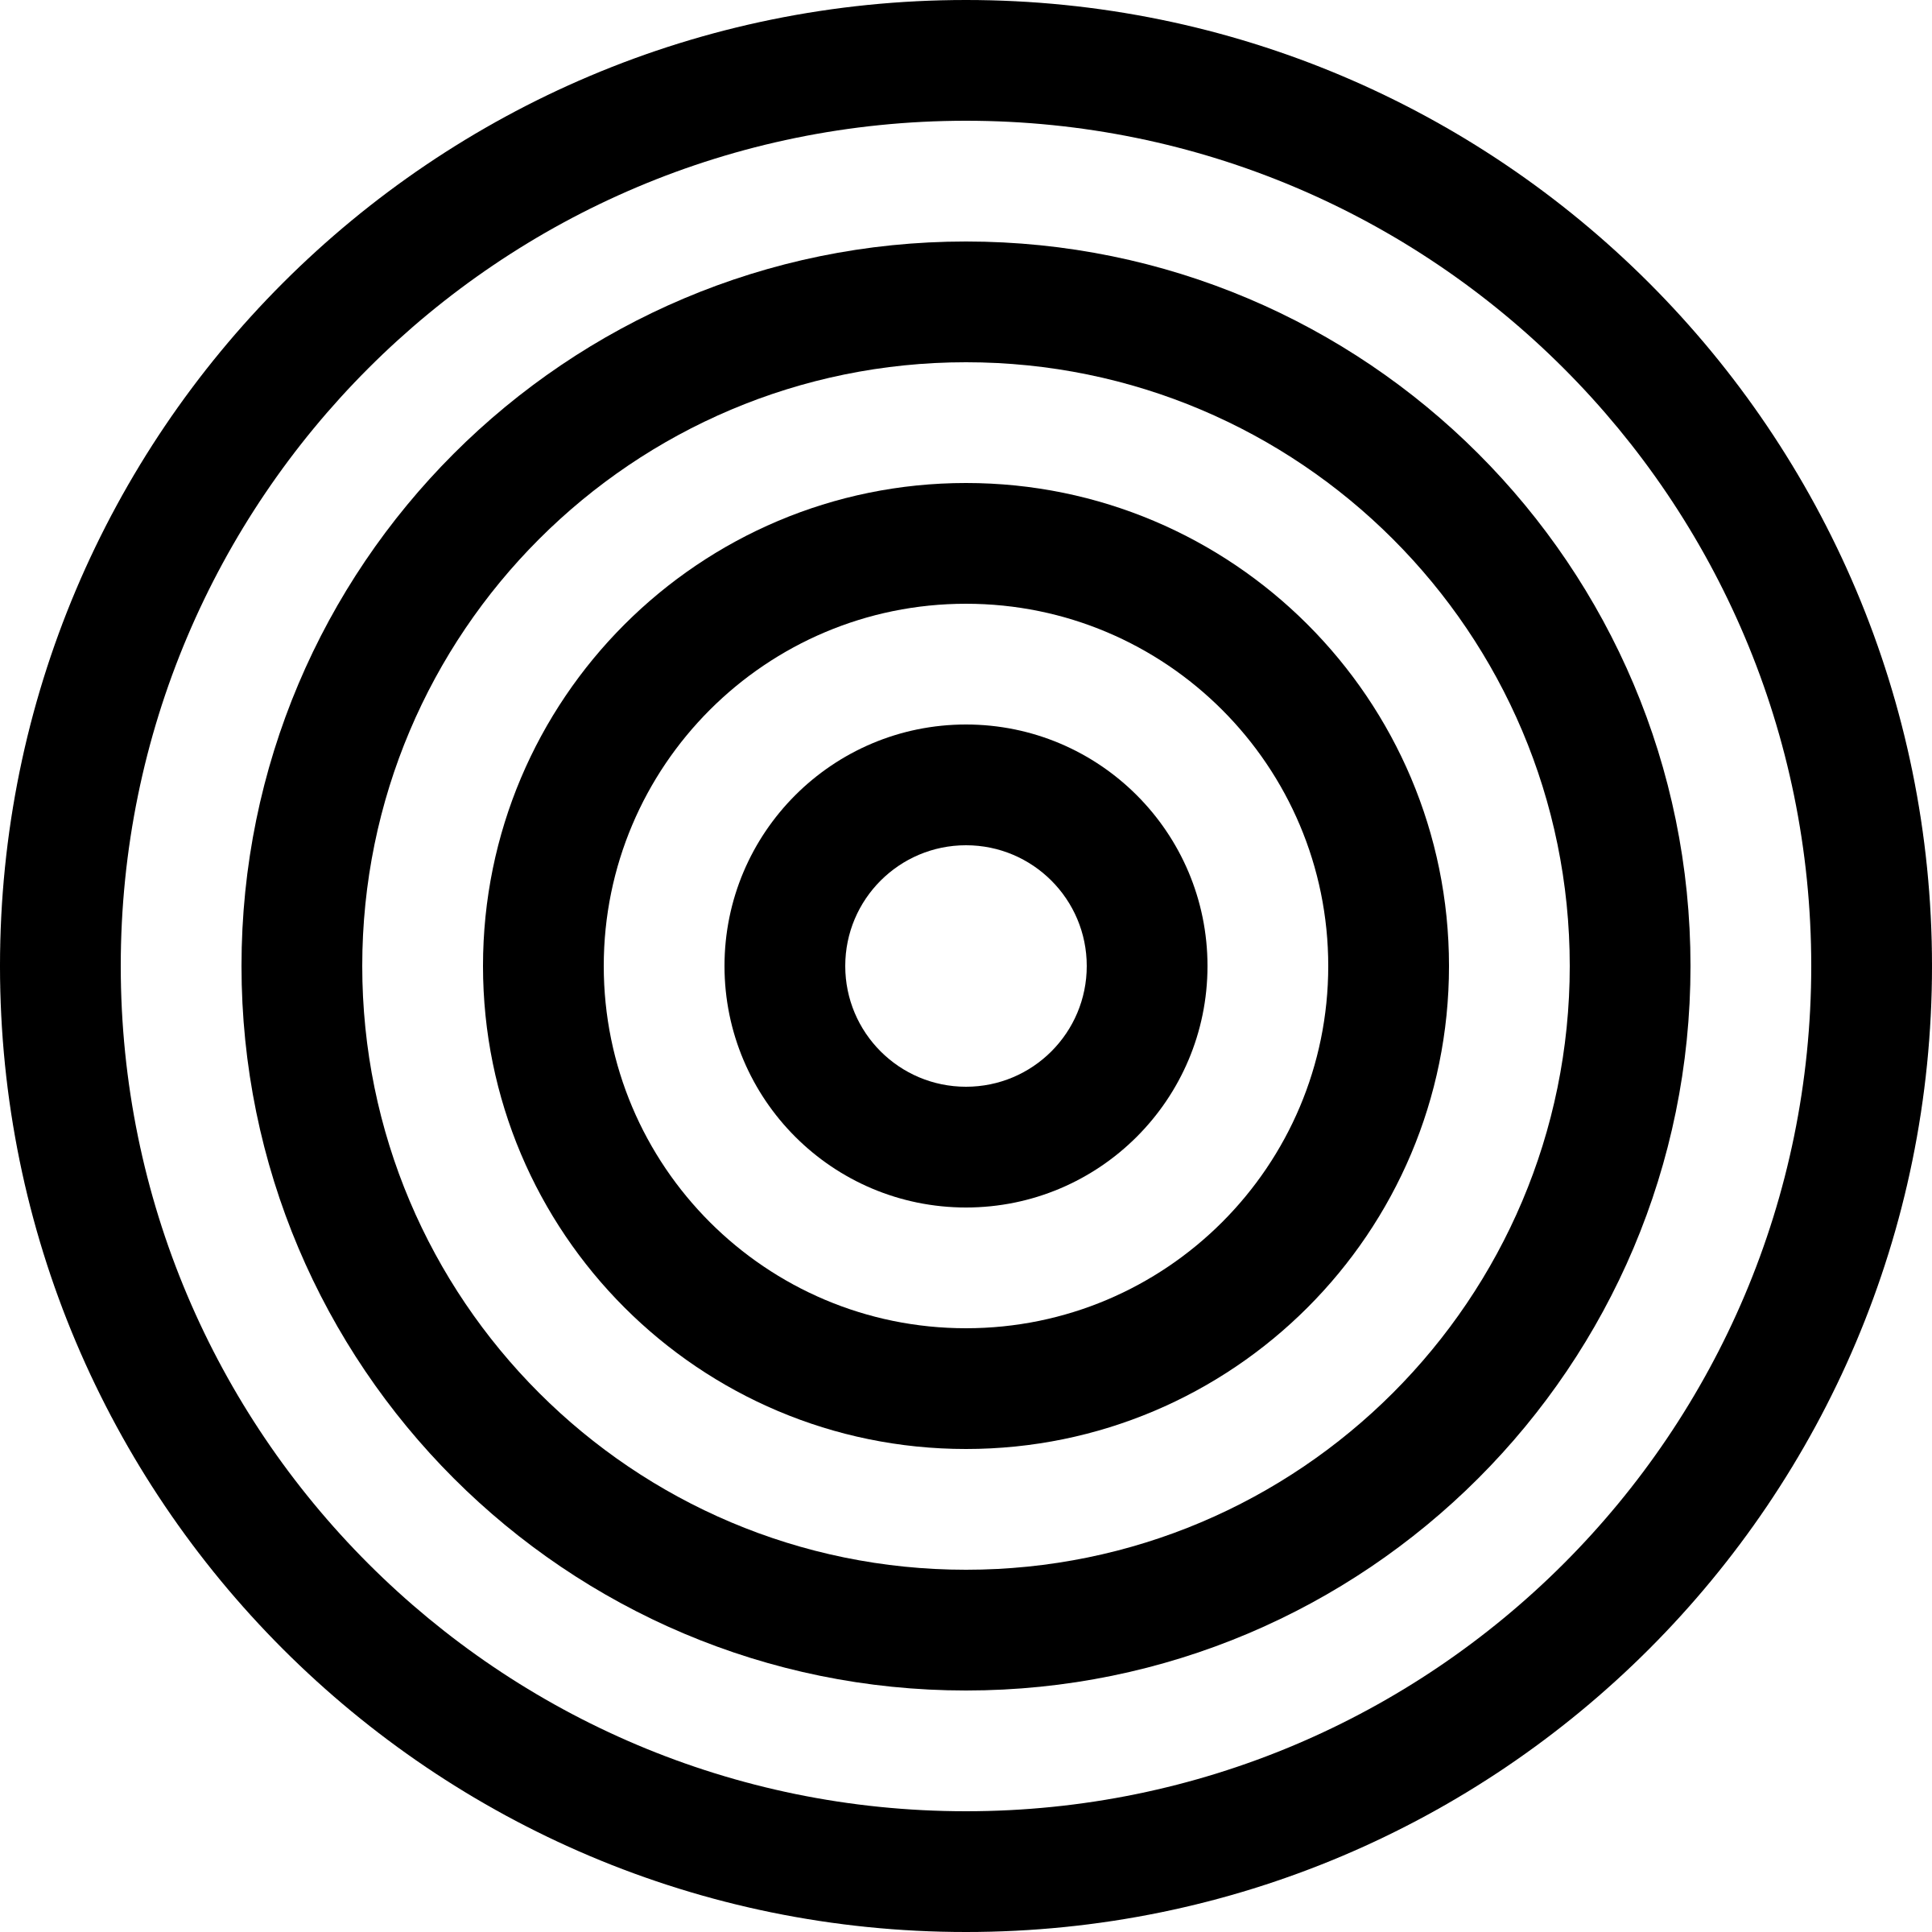 Black And White Target Transparent Png Stickpng